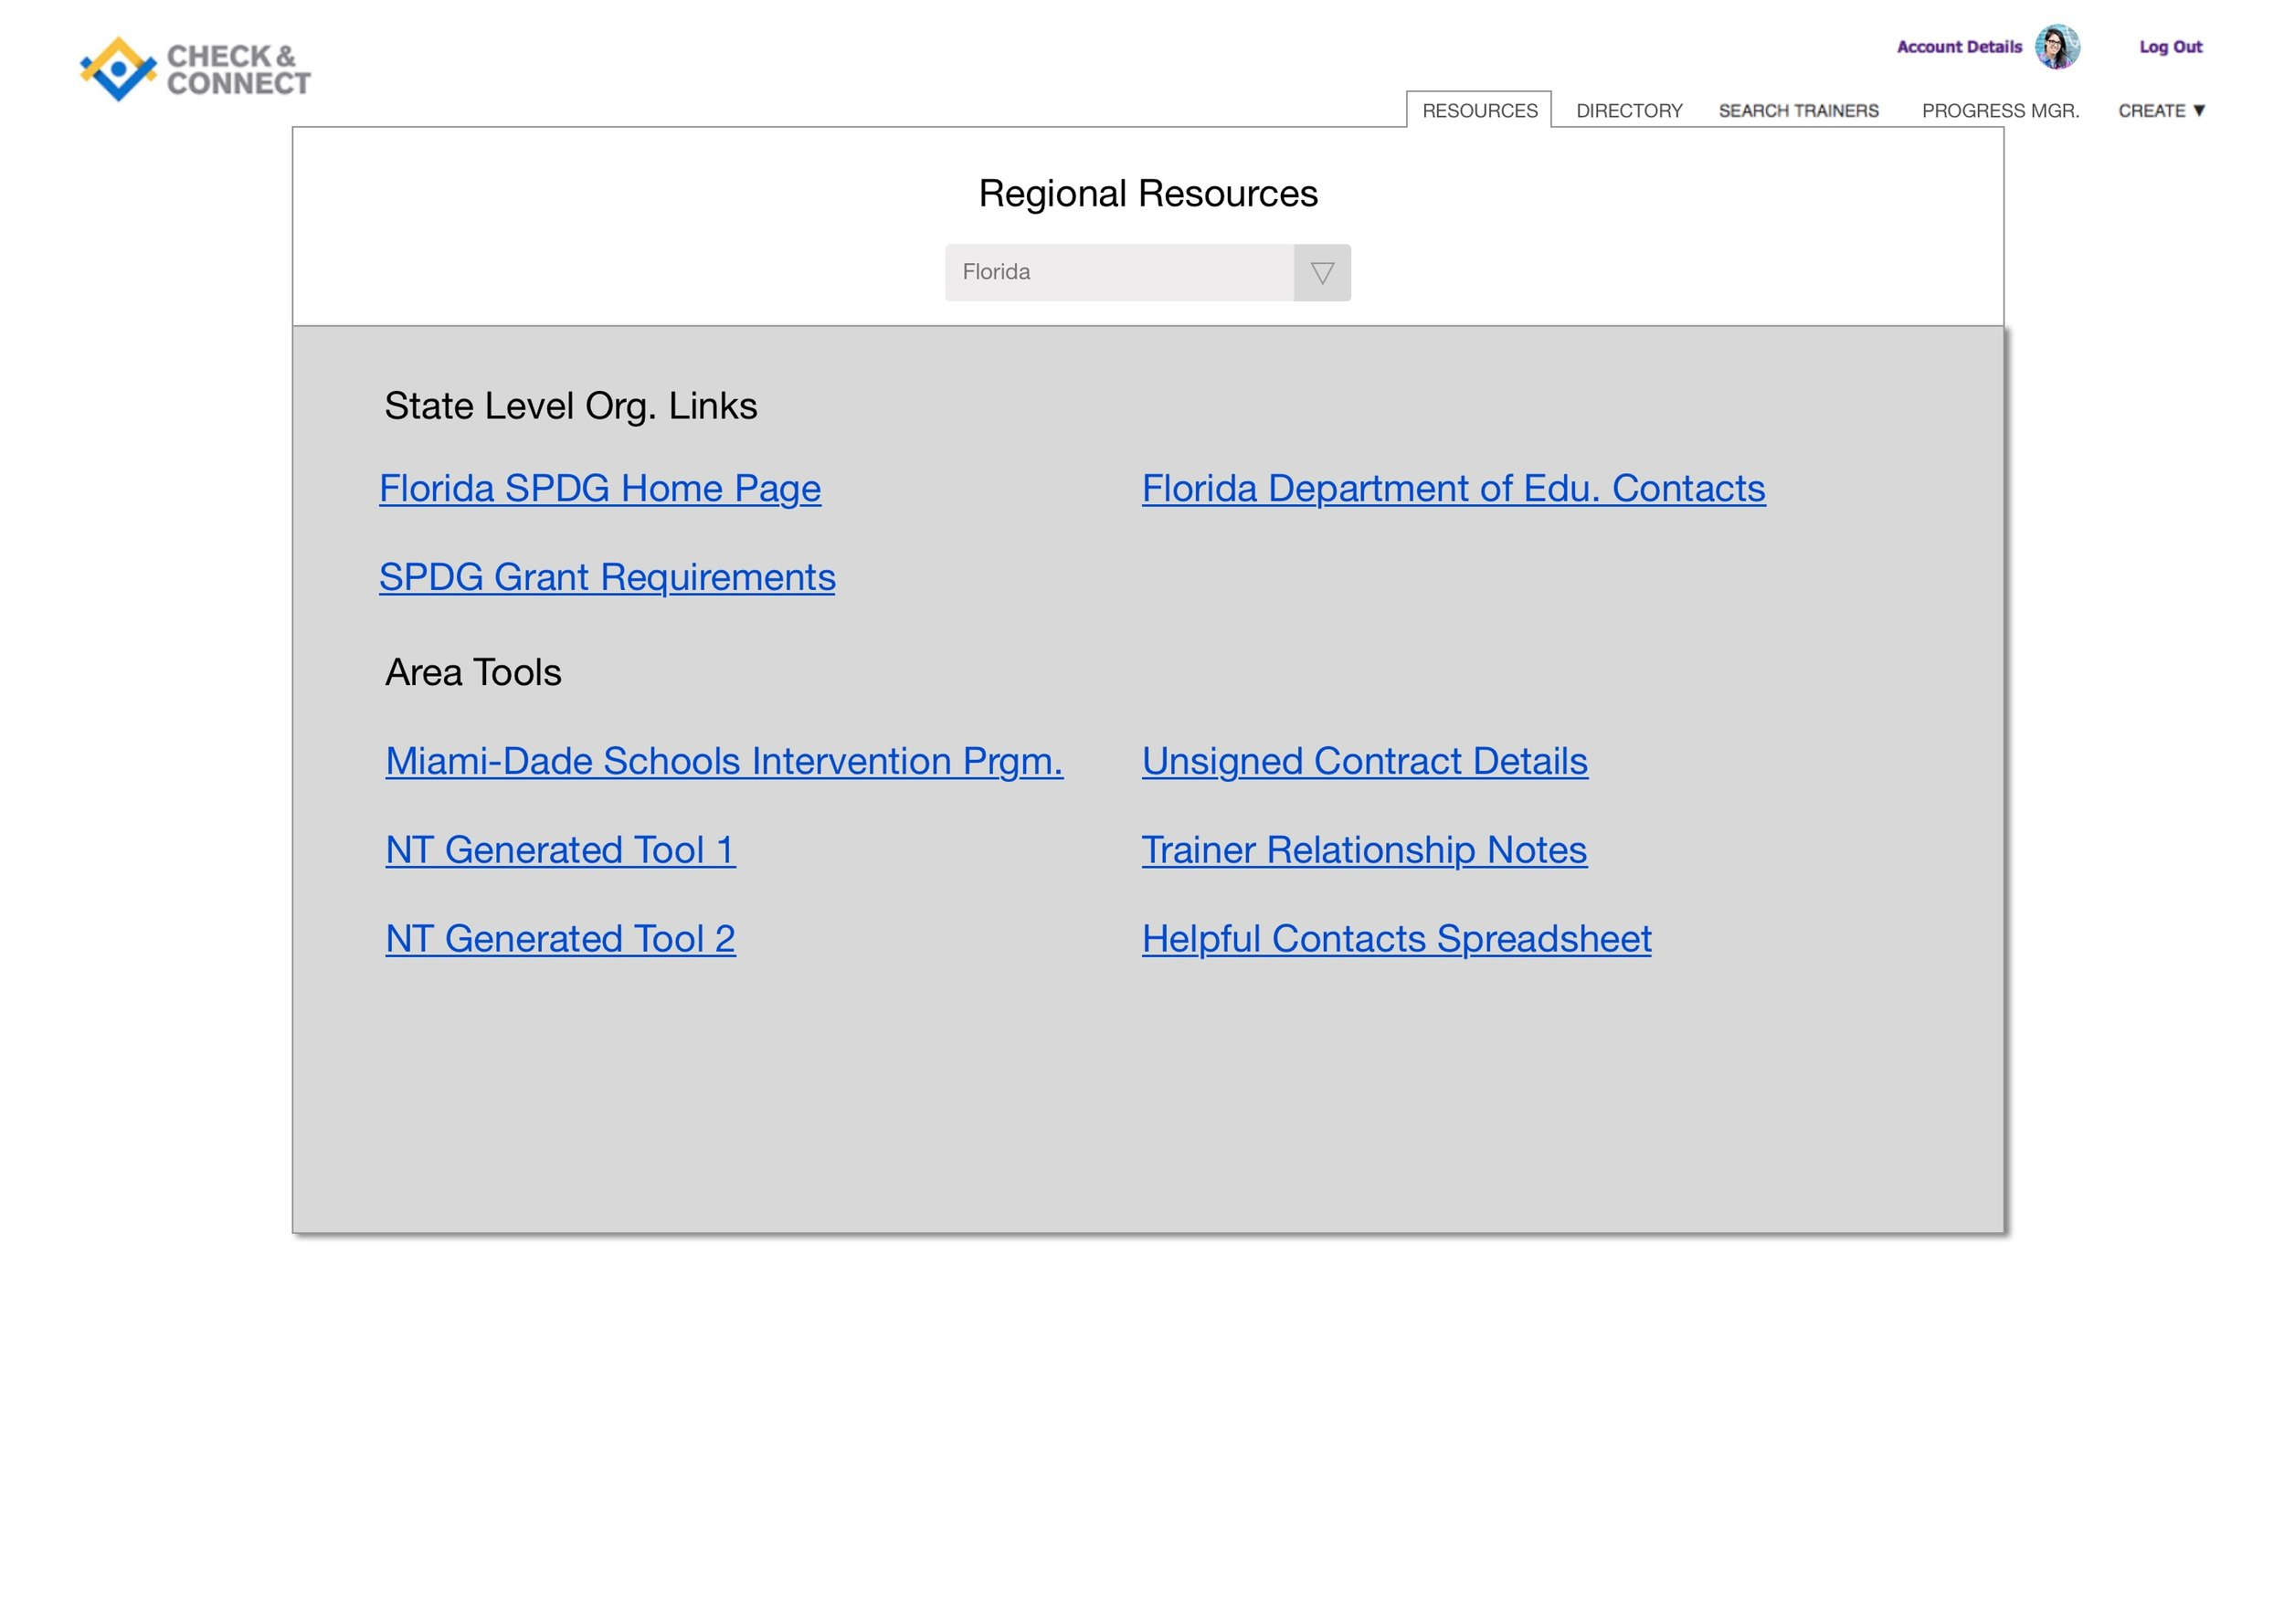 Regional Resources Page for National Trainers